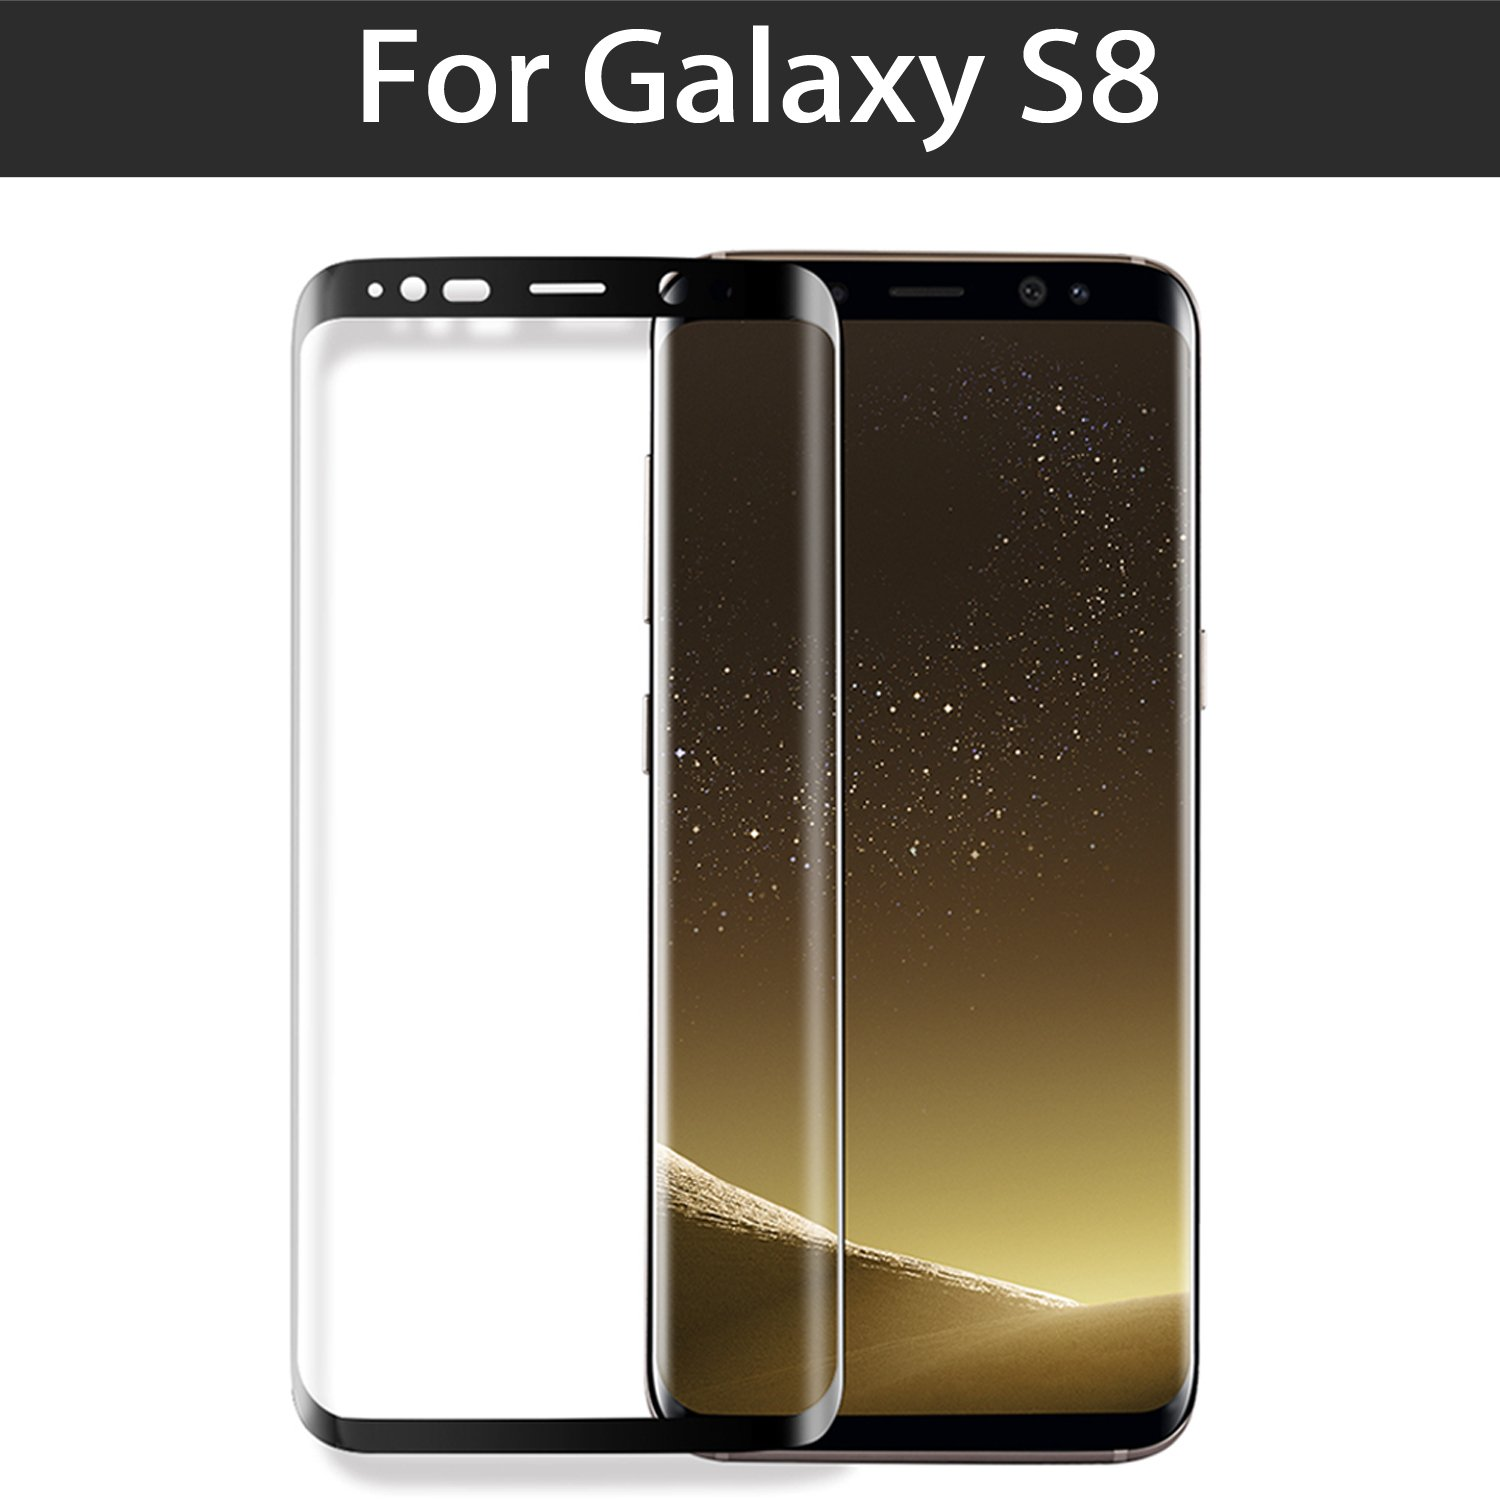 Galaxy S8 Screen Protector Beeloo Ultra Thin Hd Clear Full Blackberry Keyone Tempered Glass Cover Ampamp Curved Black Coverage Scratch Resistant